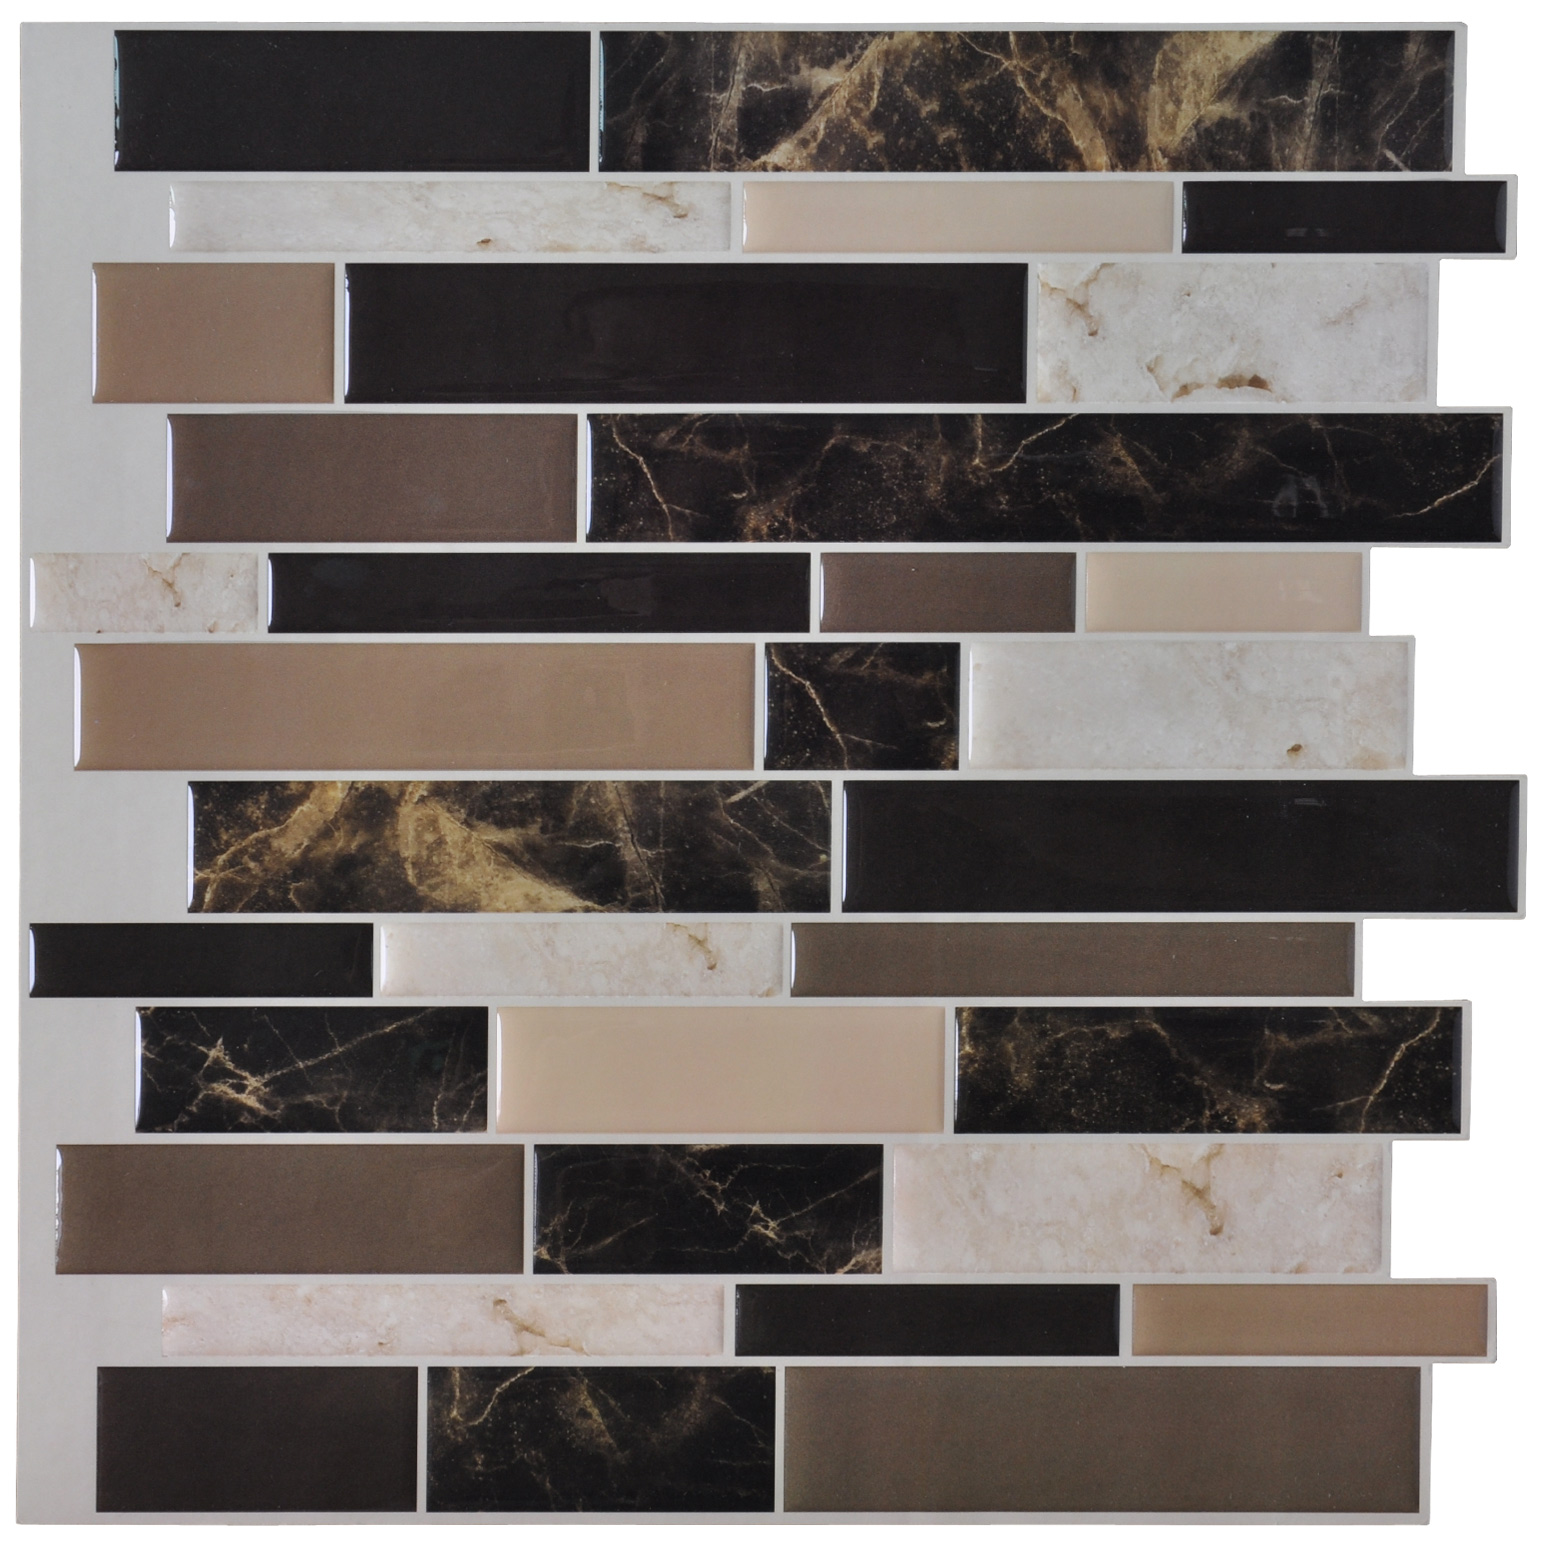 - A17024 - Vinyl Self-Adhesive Peel And Stick Backsplash Tiles For Kitchen,  12